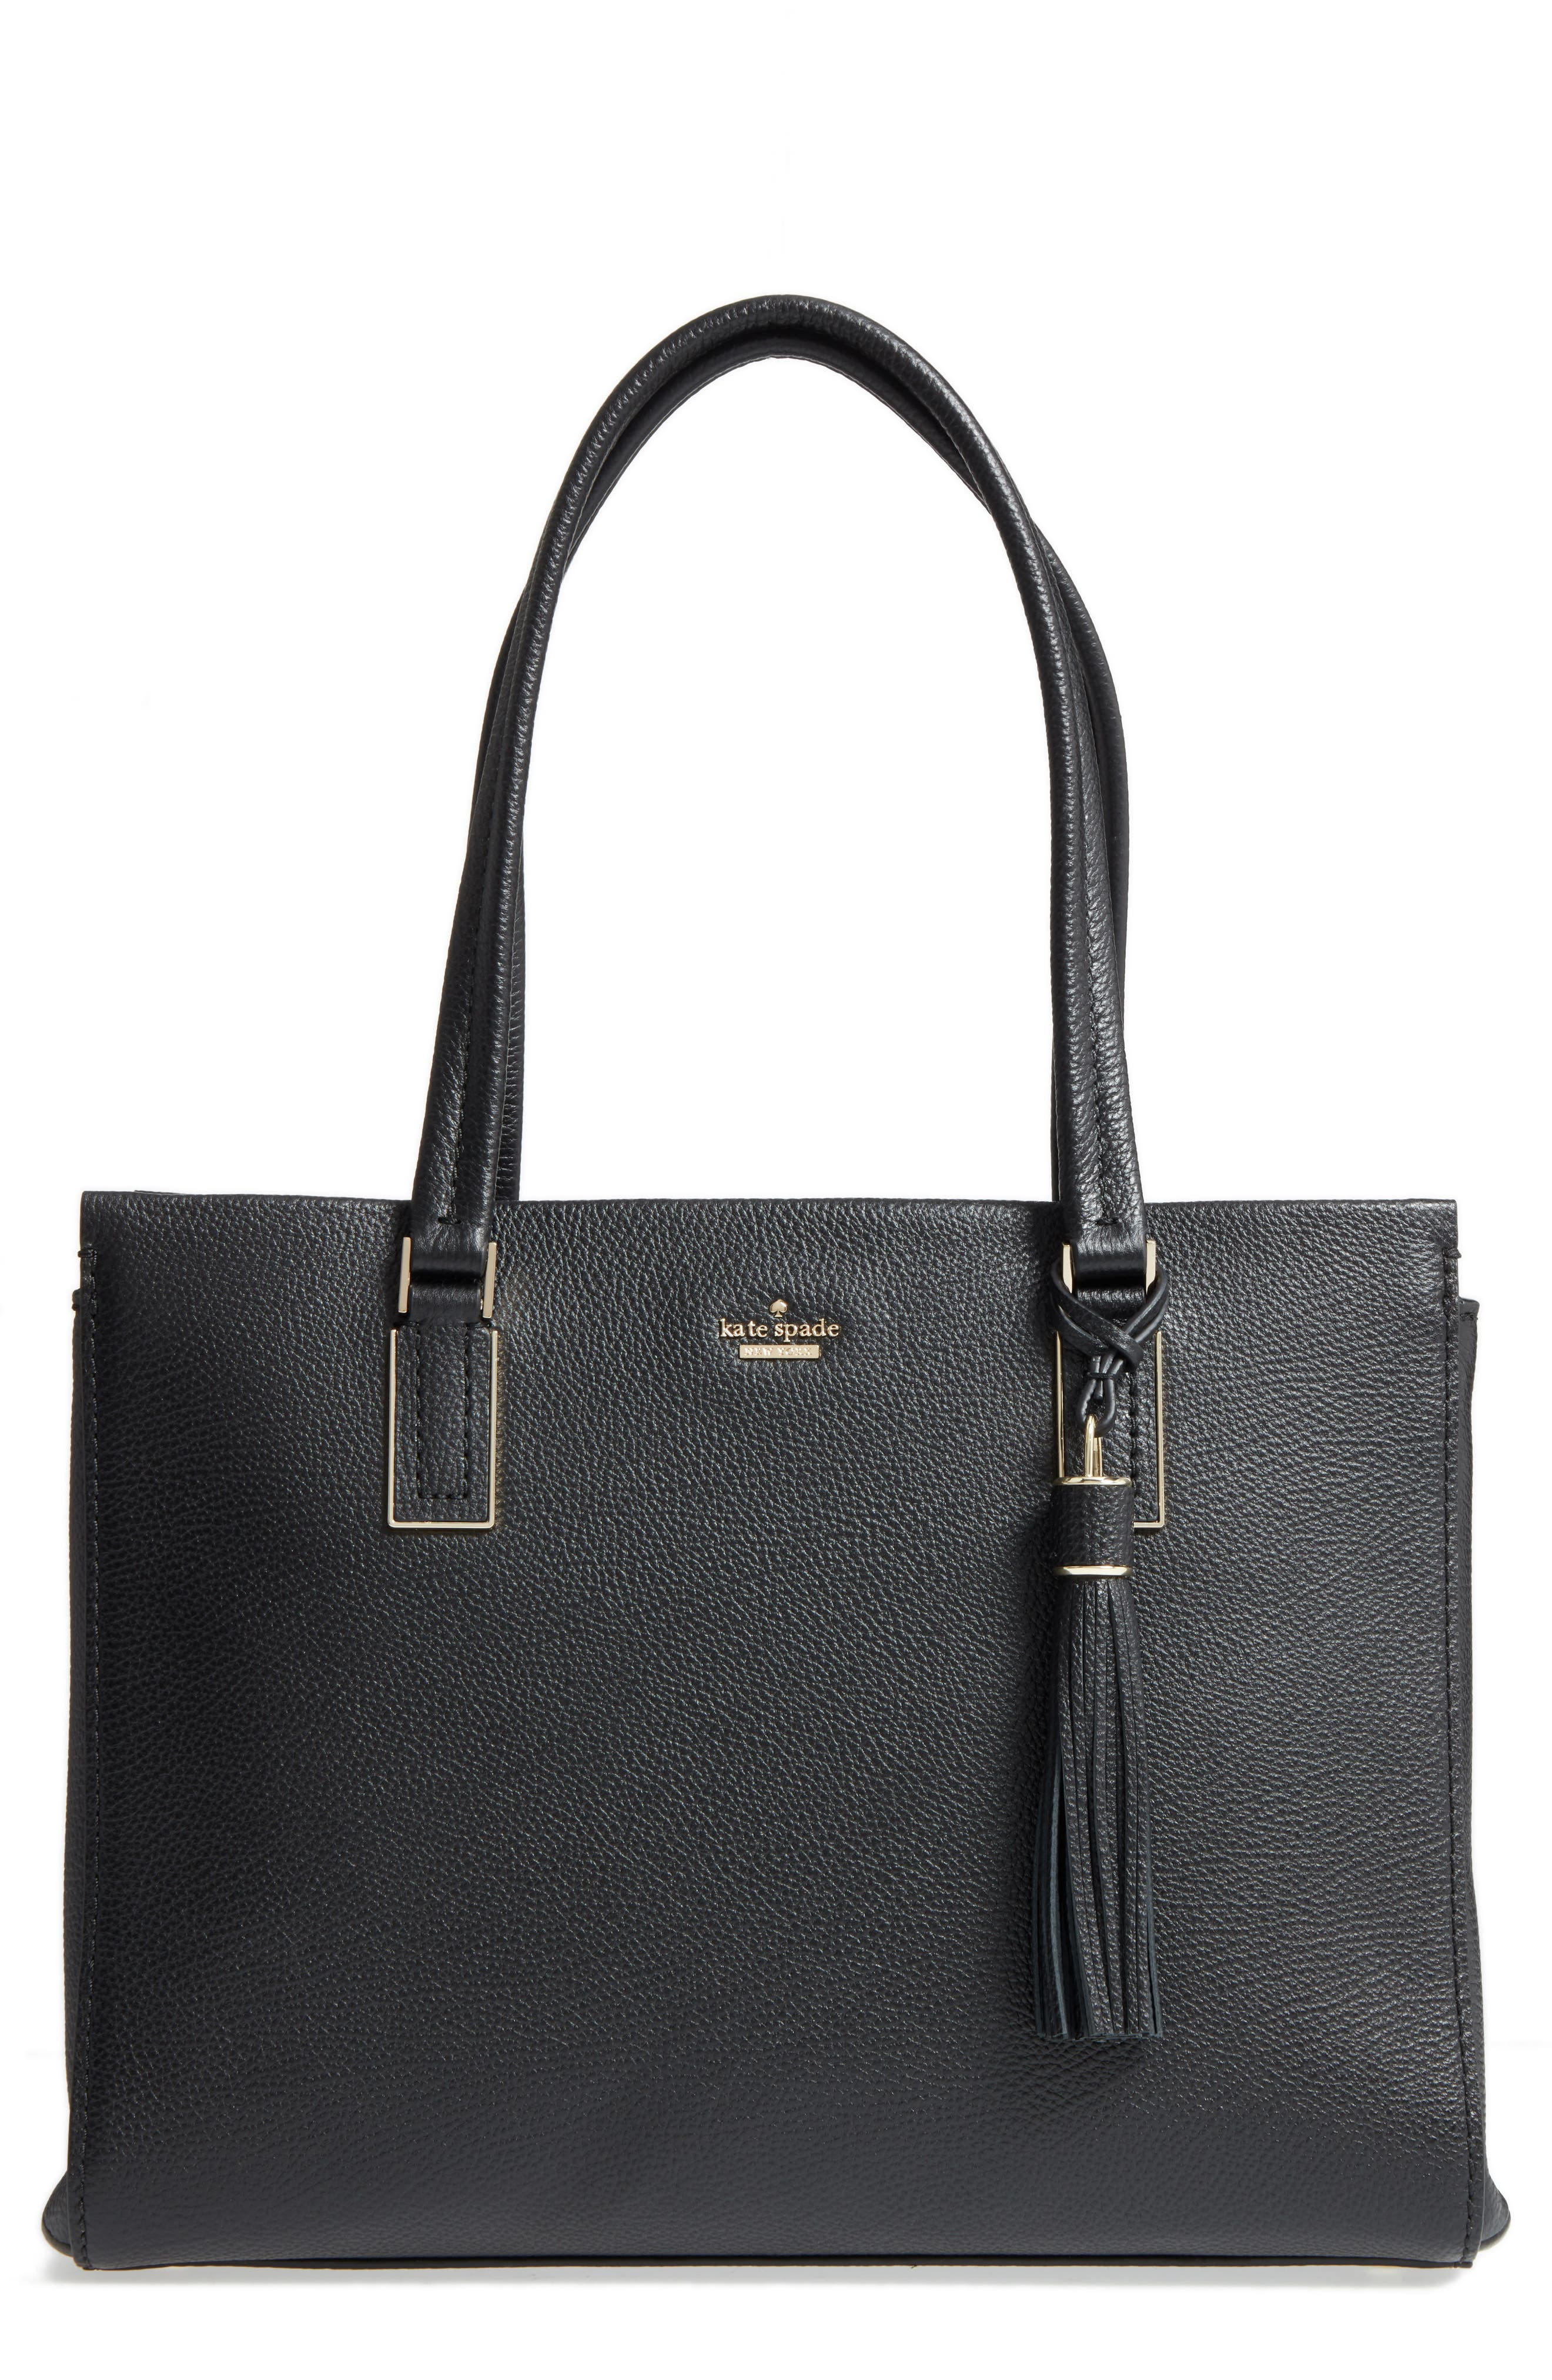 kingston drive - bartlett leather satchel,                             Main thumbnail 1, color,                             Black